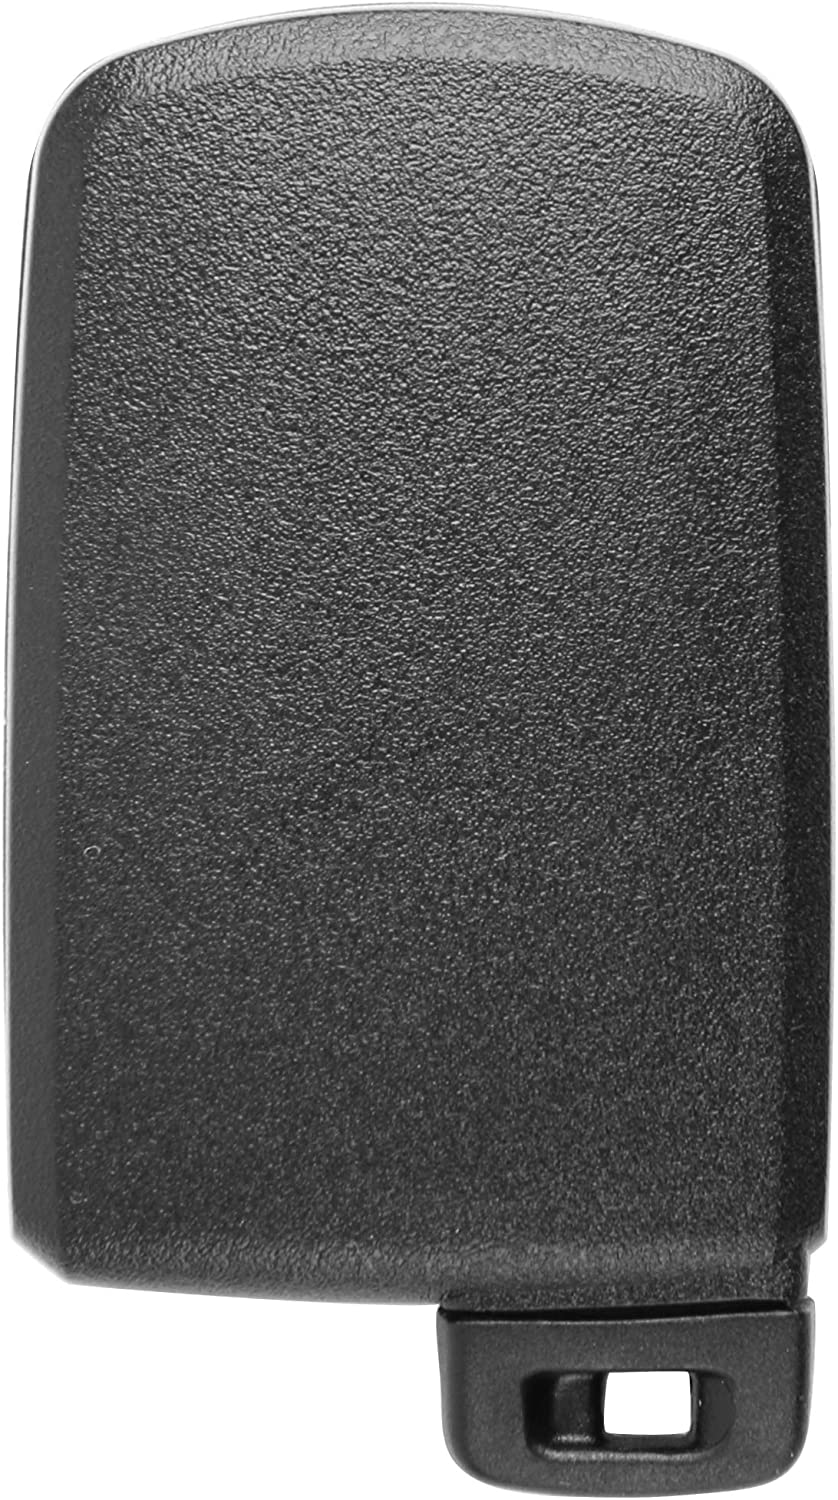 Entry Remote Replacement KRSCT KRSCT Keyless Key Fob Fits 2013-2020 Toyota Avalon HYQ14FBA, RSK-TOY-00204 2012-2017 Camry 2014-2019 Corolla 4-Button